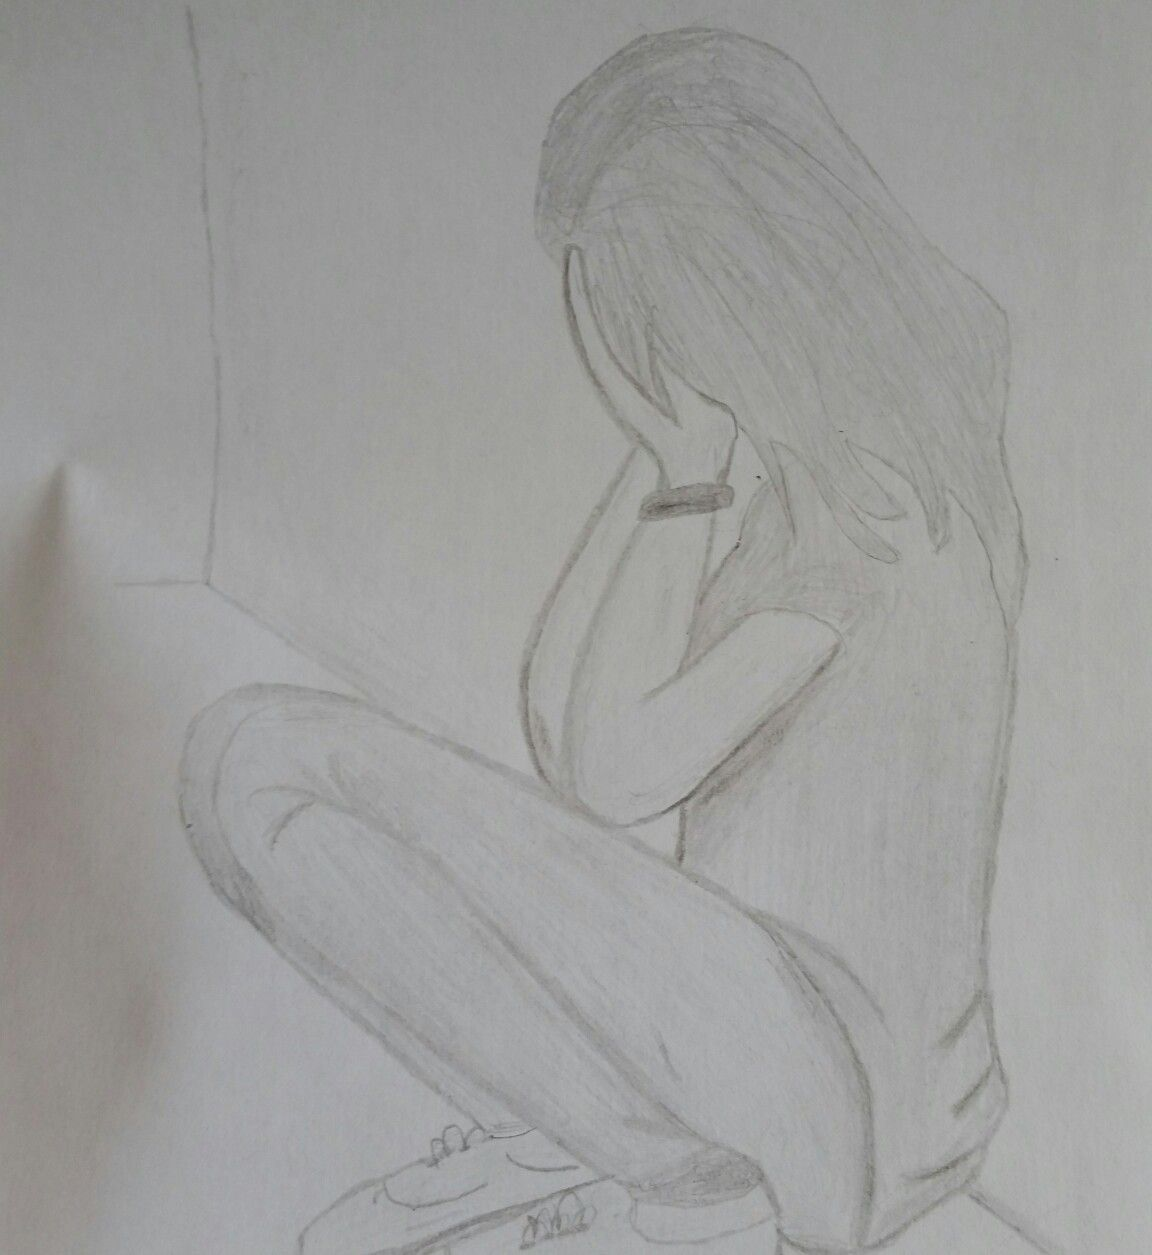 Girl alone and crying draw lonely girl